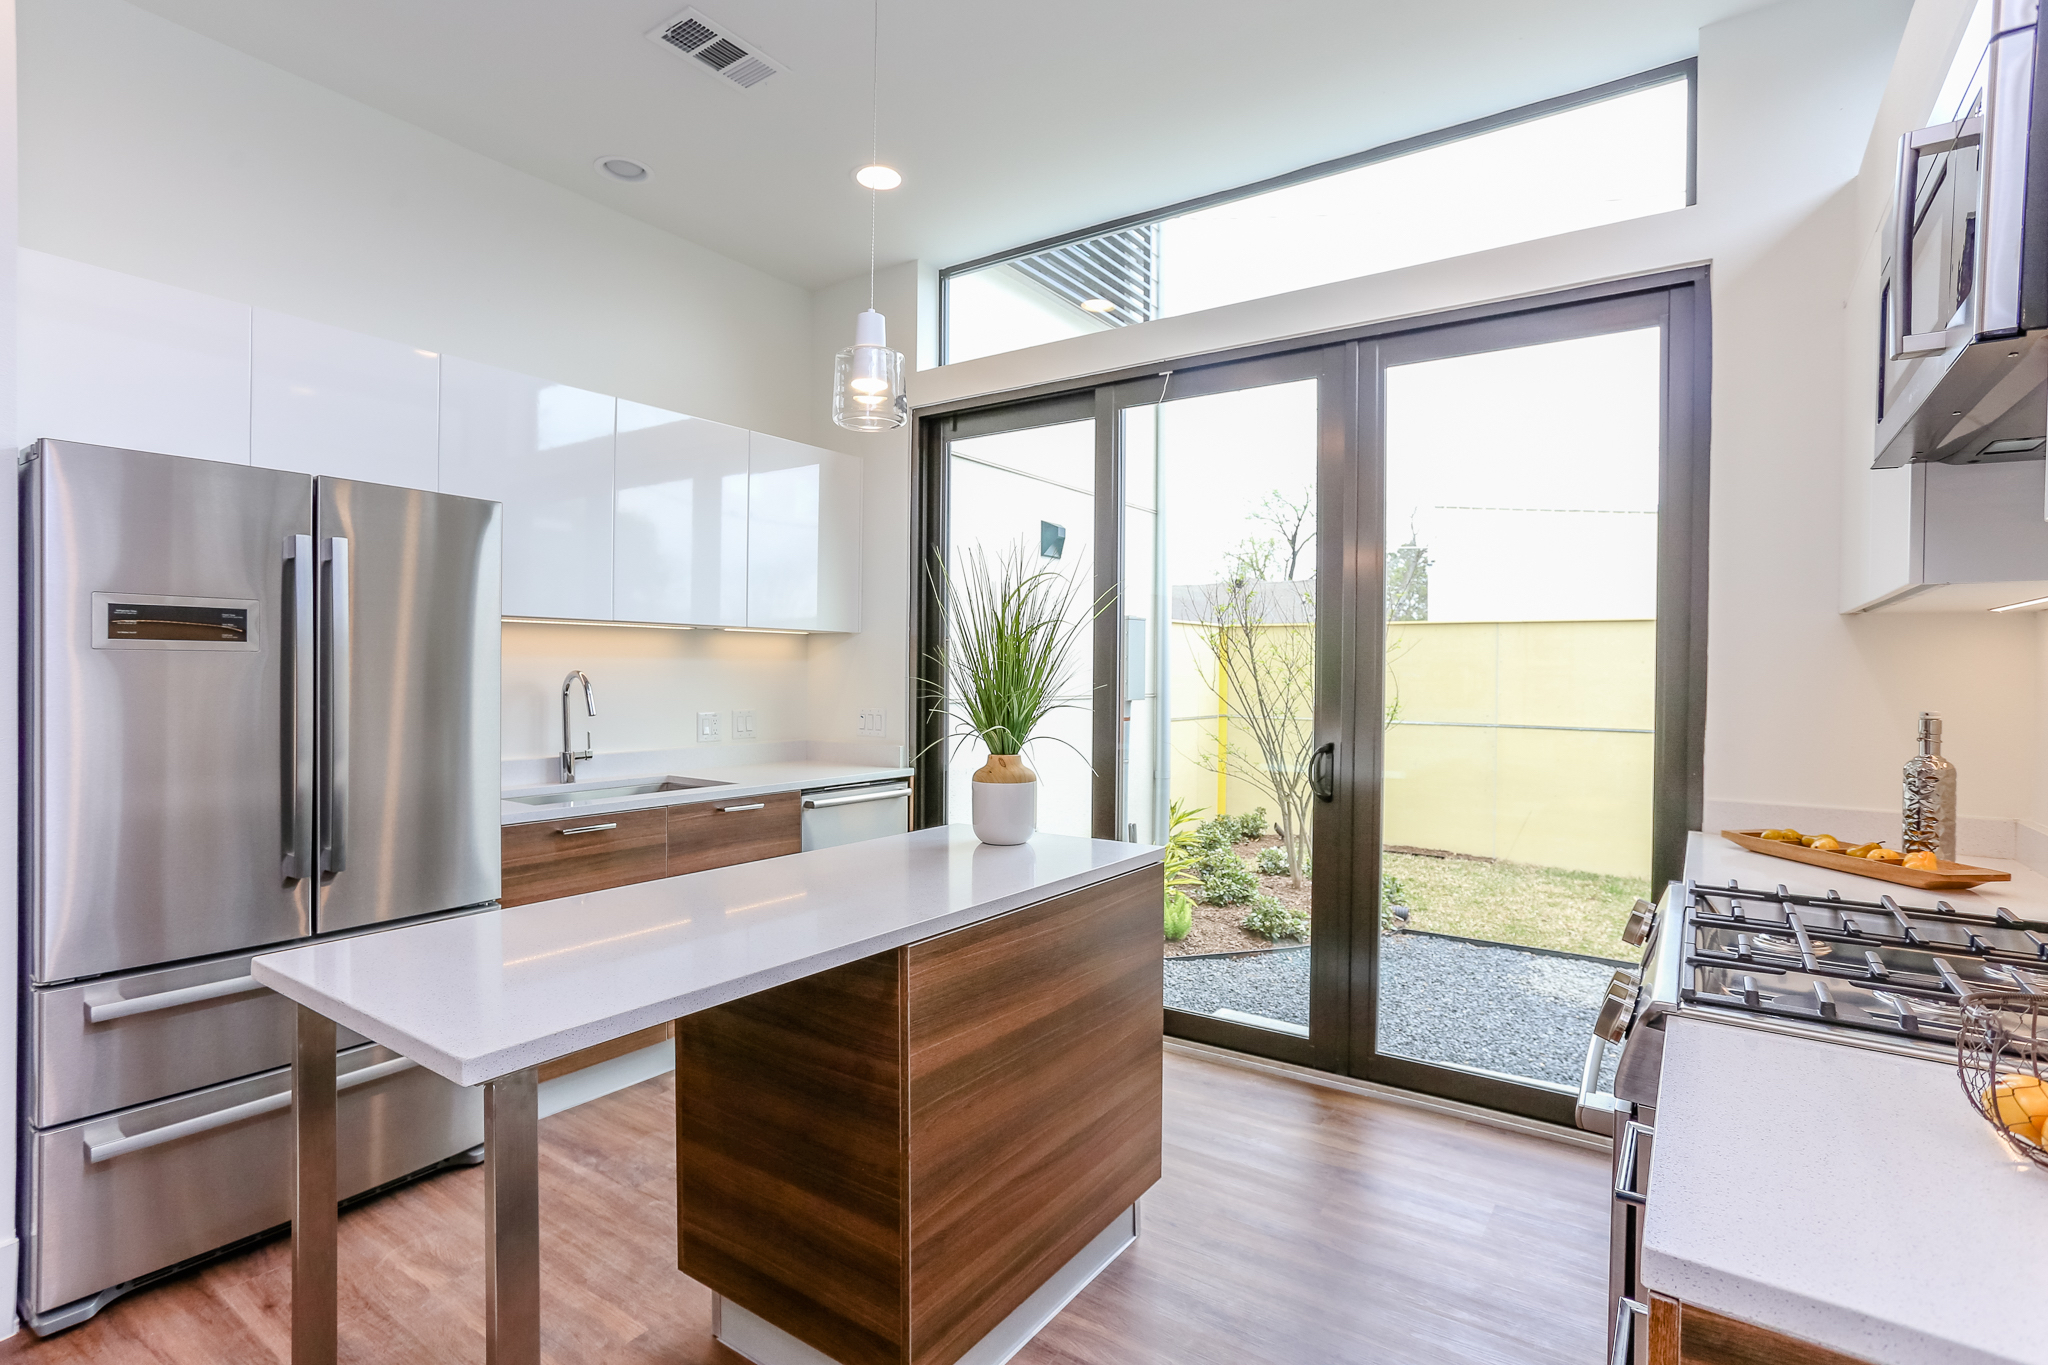 Entertaining is a dream in this ultra-modern kitchen which includes a Bosch stainless steel appliance suite, Moen faucet and sleek Madeval European styled cabinetry with soft-close hinges.